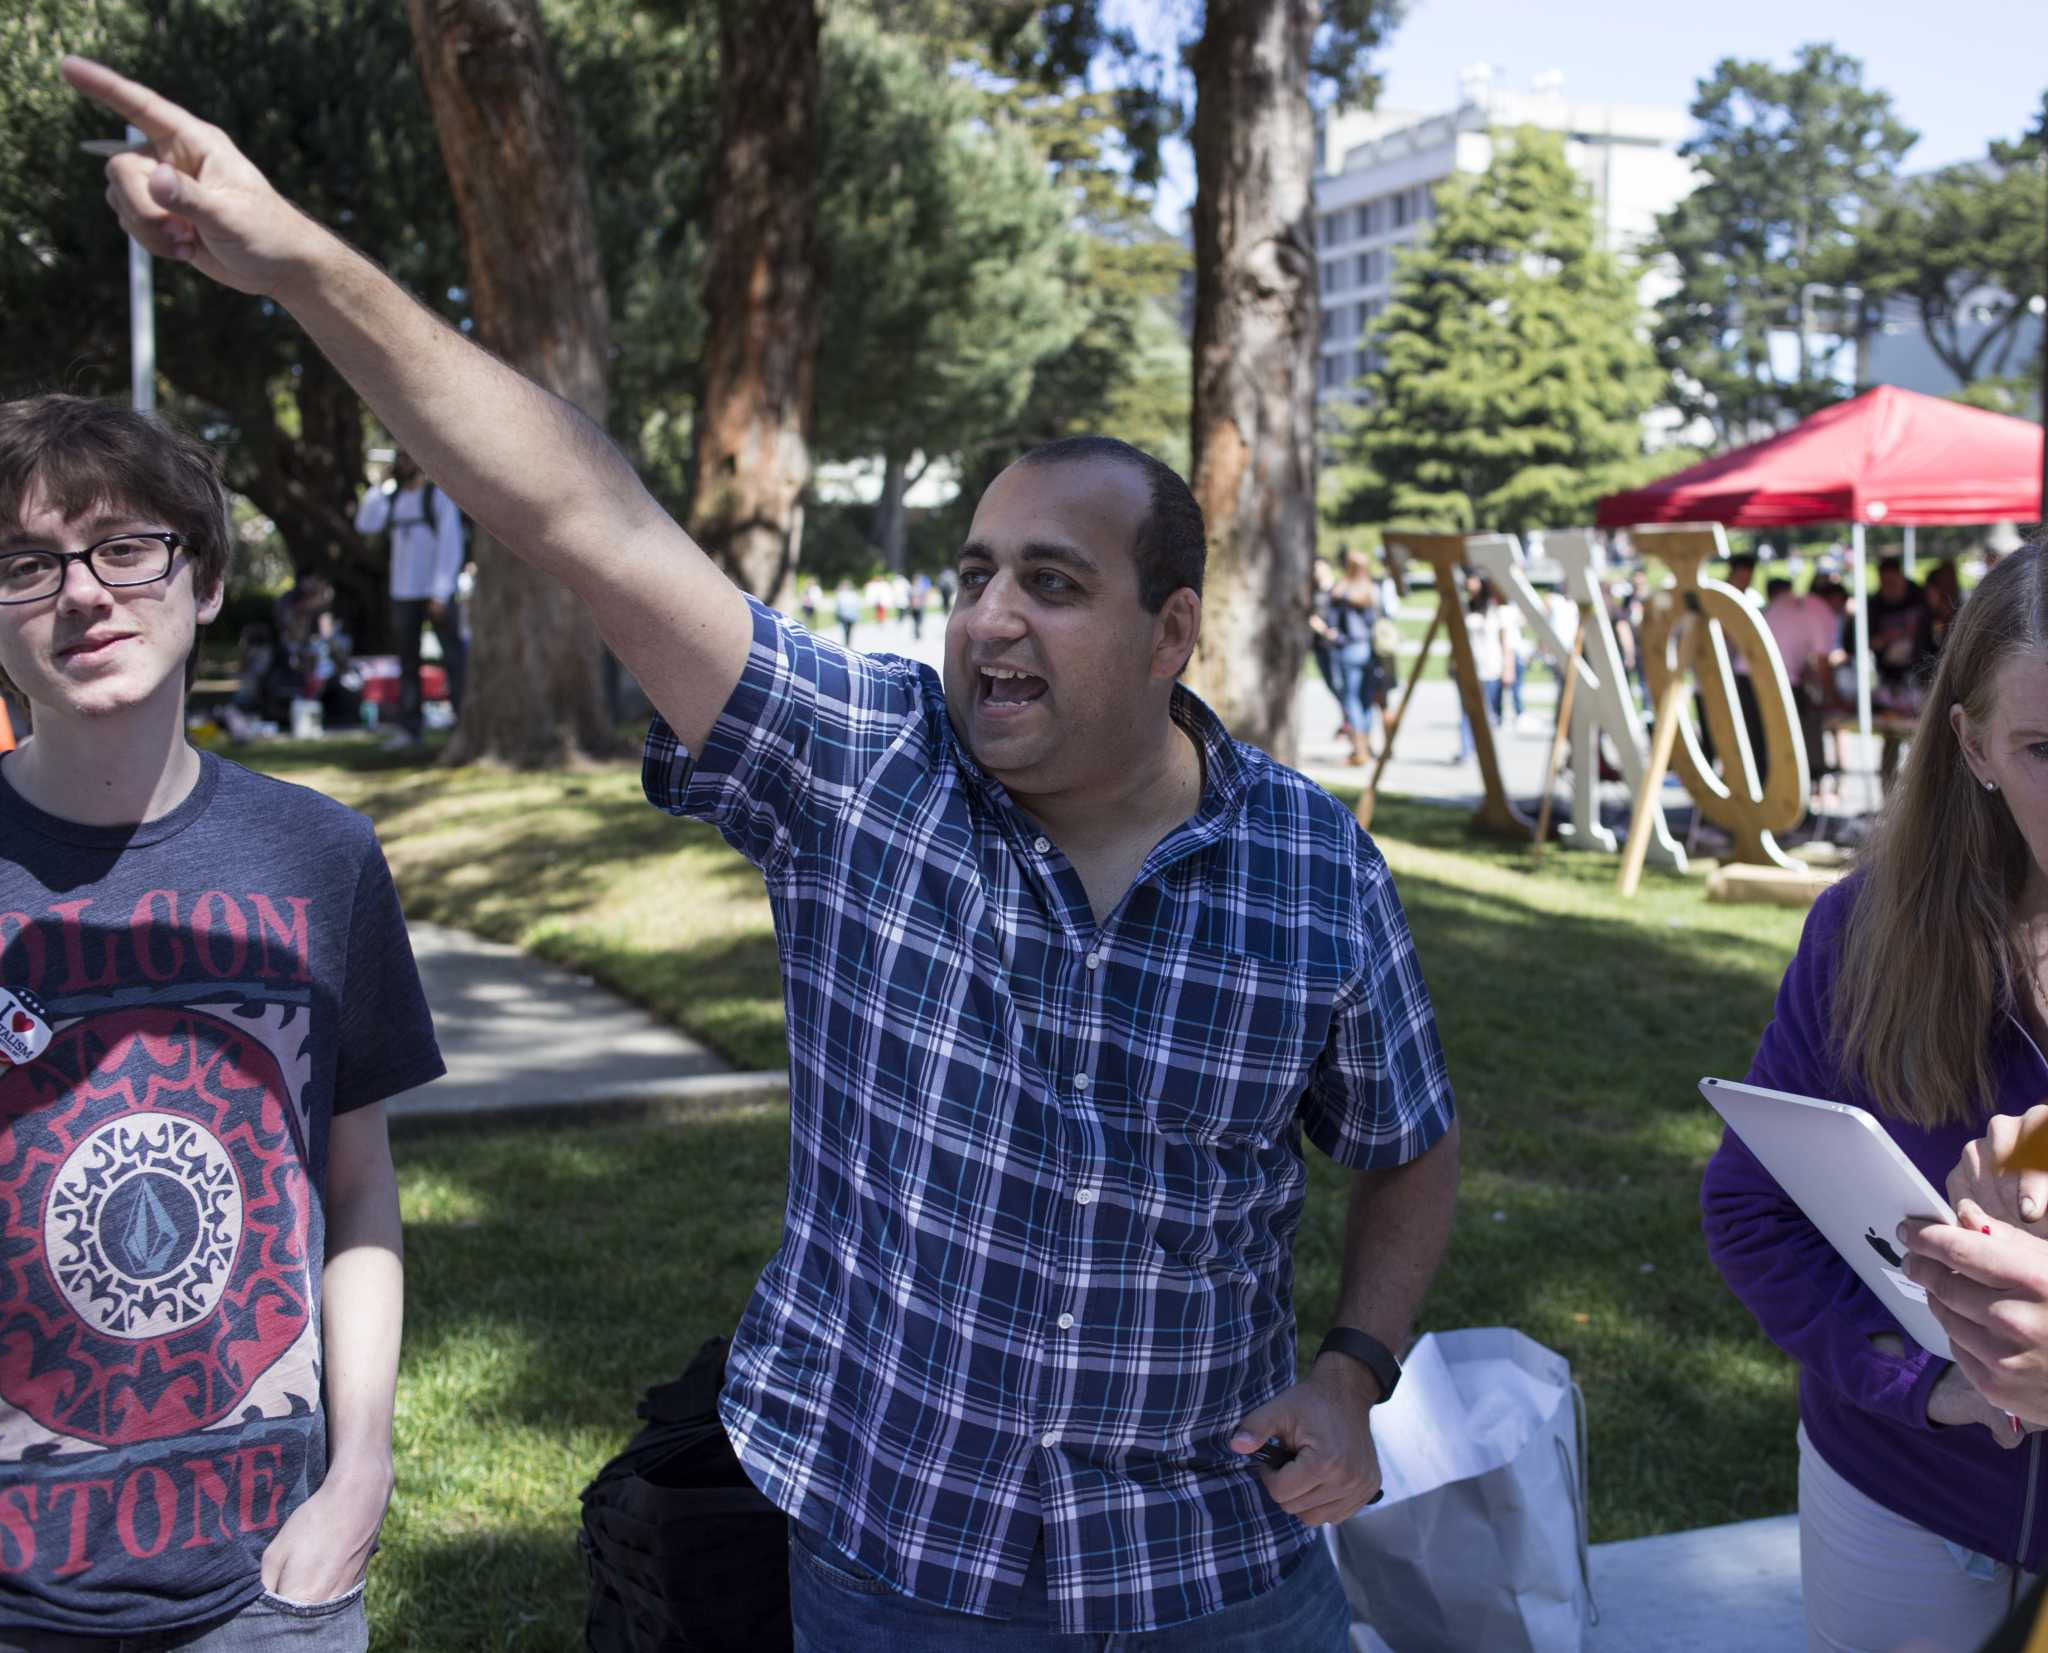 SF State student John Ayoub, the Young Republicans group leader, points toward the ethnic studies rally to draw attention to the fact that they were playing